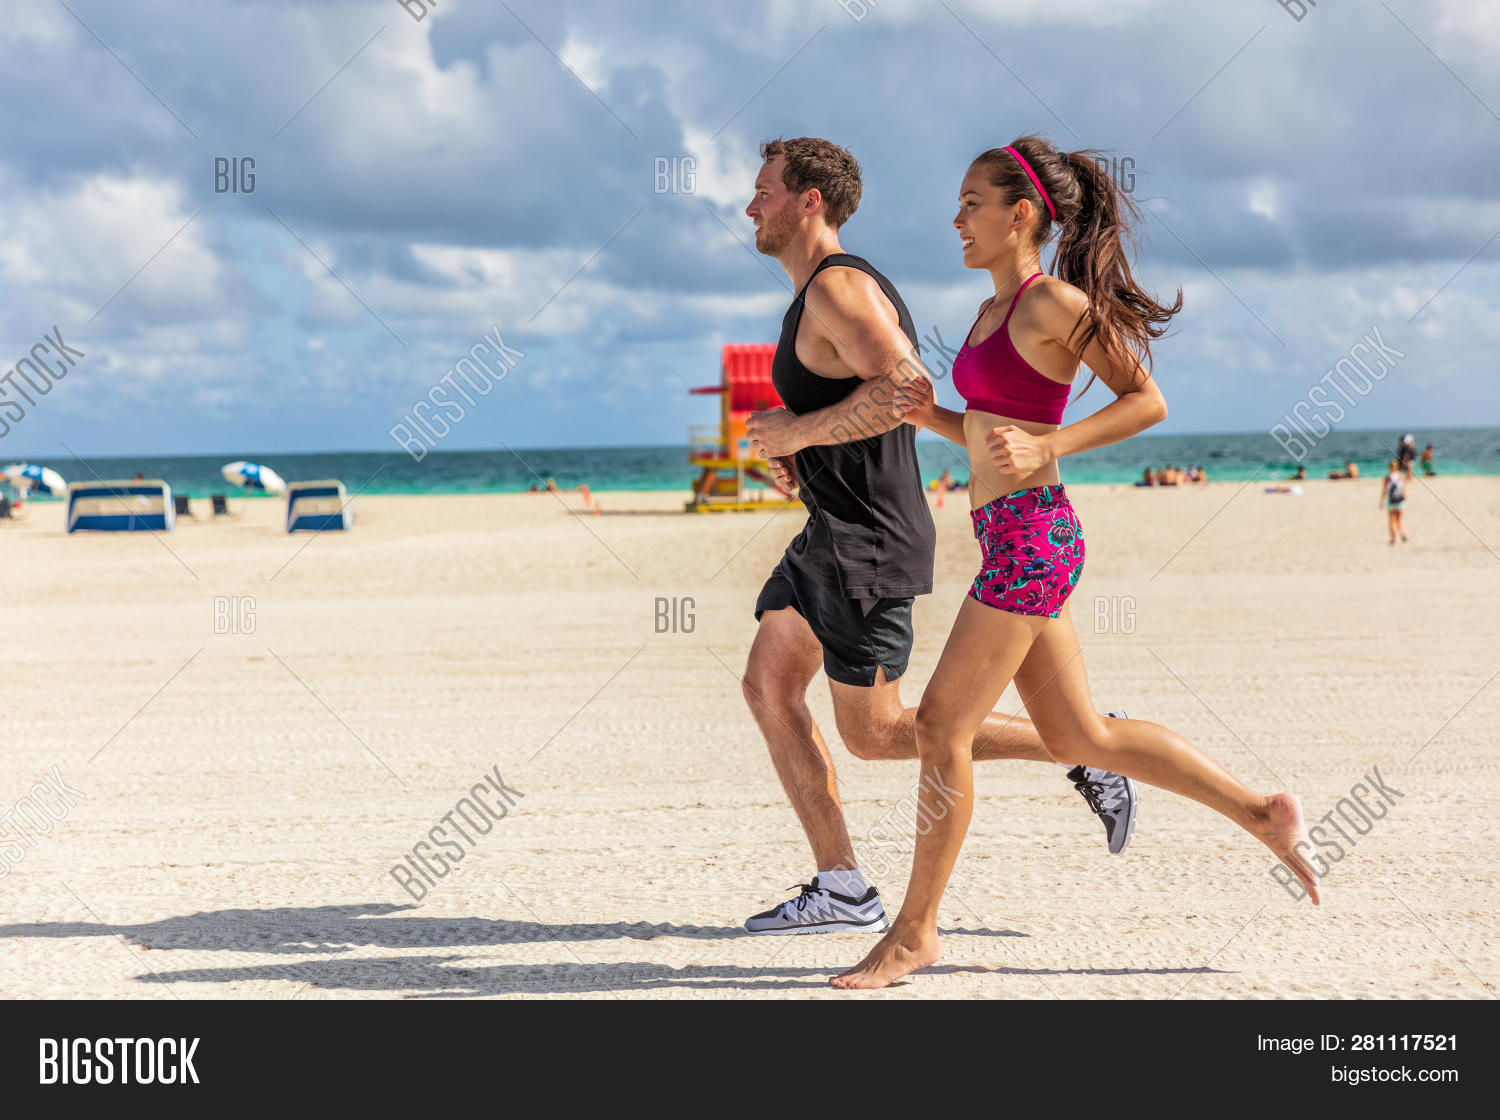 active,activity,adults,american,asian,athletes,barefoot,beach,cardio,couple,exercise,fit,fitness,florida,happy,healthy,interracial,jogging,legs,lifestyle,man,men,miami,motion,ocean,outside,partner,people,person,profile,run,runner,runners,running,shoes,side,south,sport,sports,summer,sun,together,training,two,usa,vacation,woman,women,workout,young